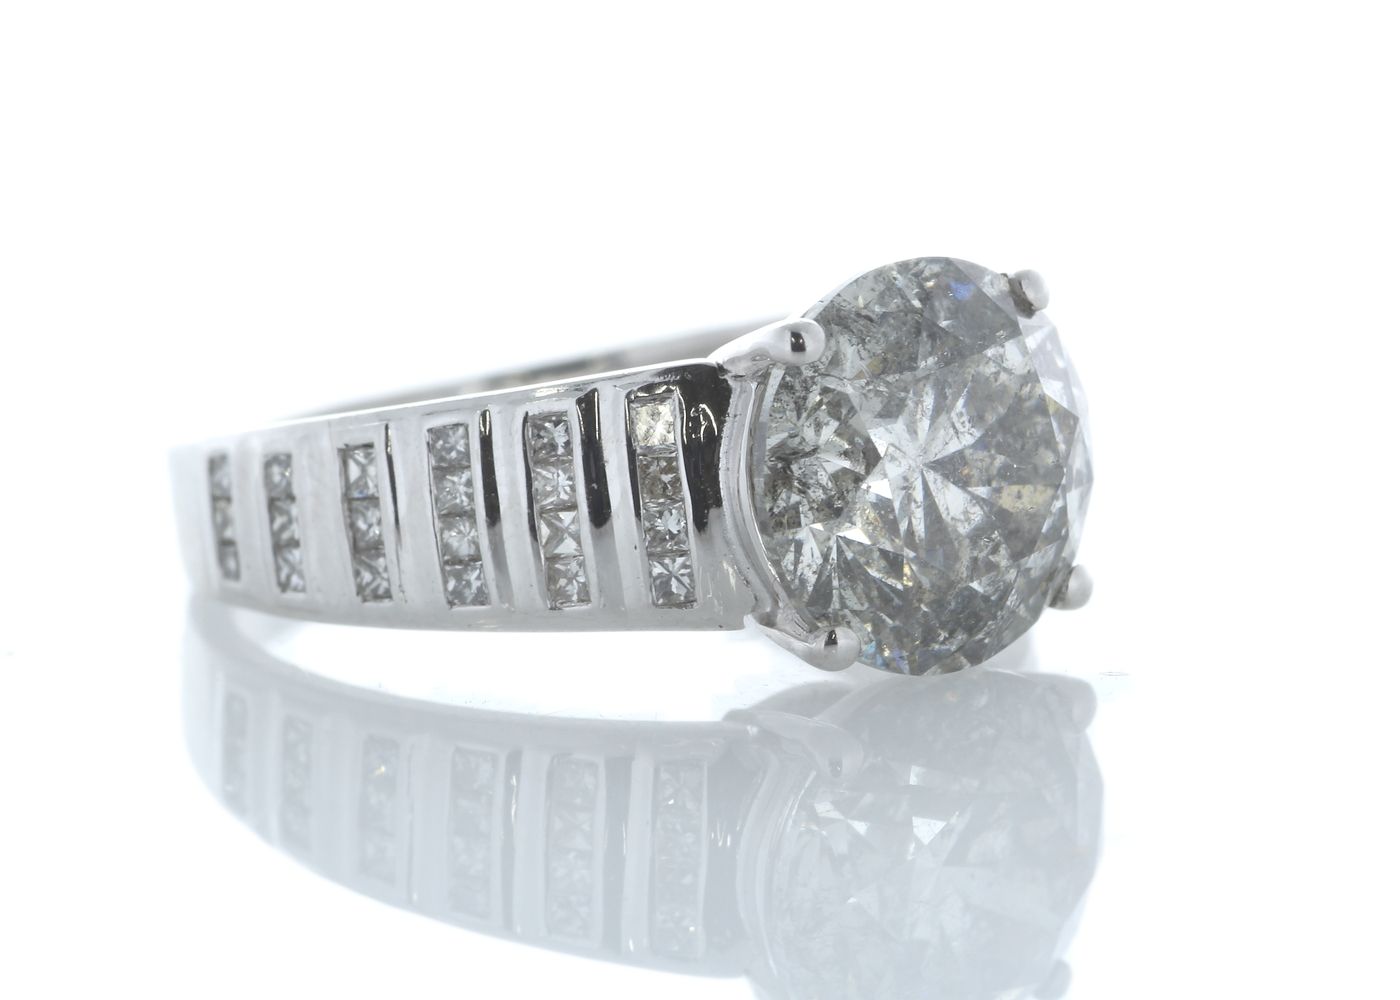 Lot 25 - 18ct White Gold Single Stone Prong Set With Stone Set Shoulders Diamond Ring 4.65 Carats